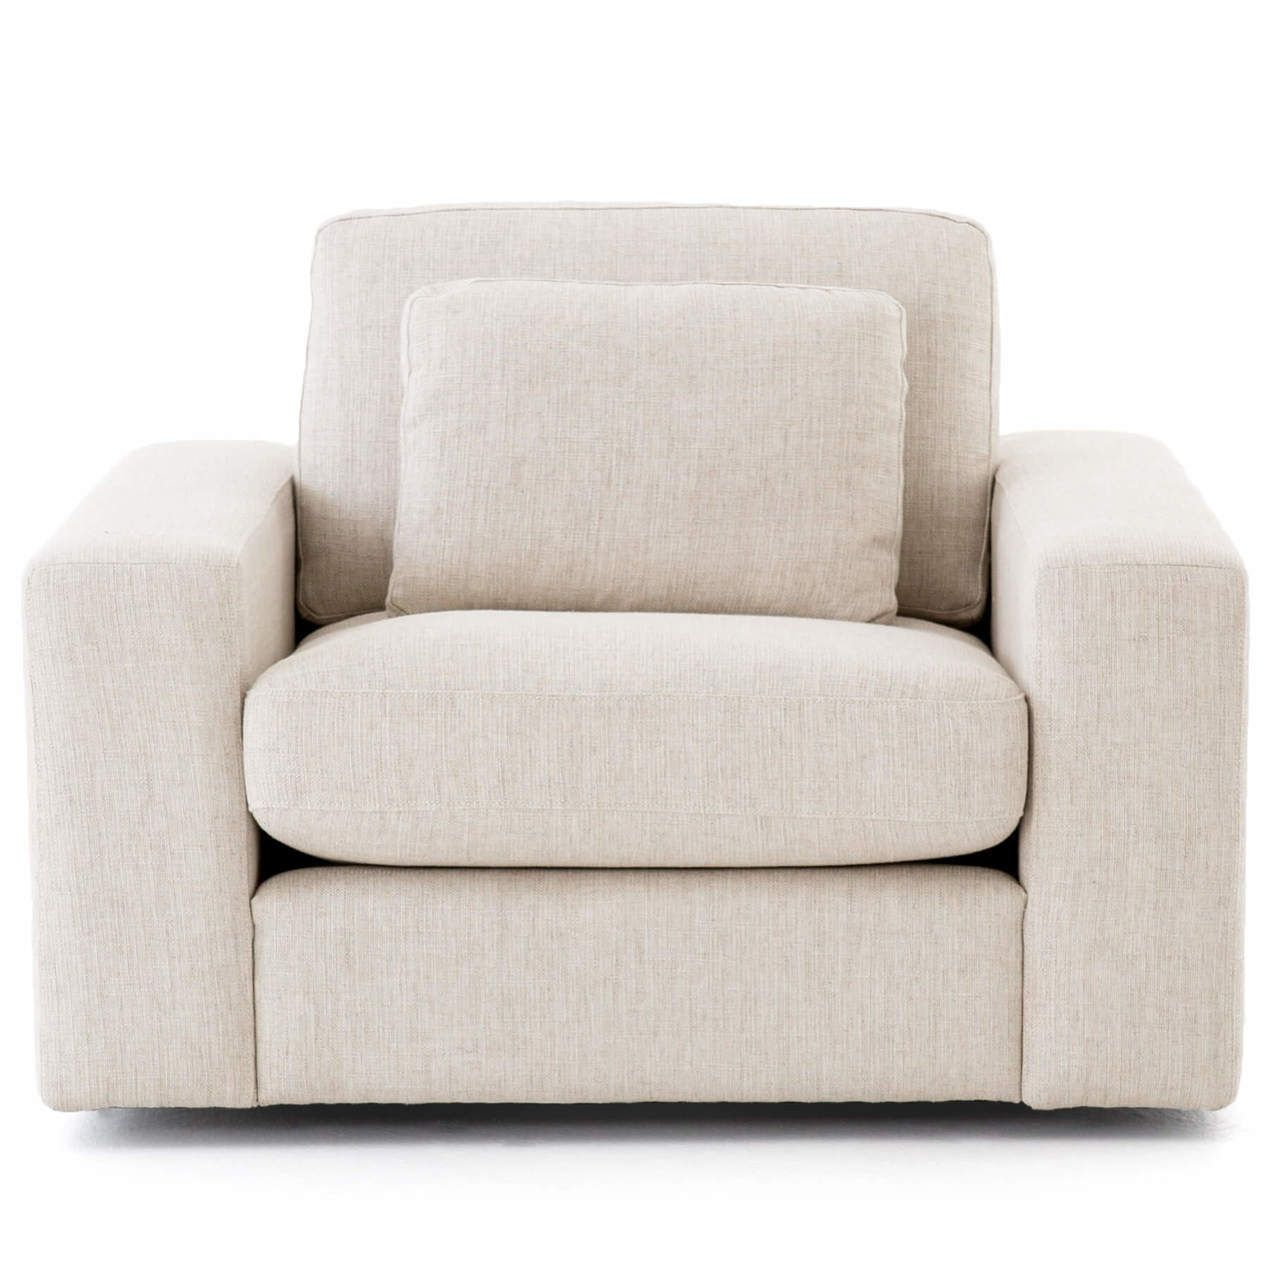 Bloor contemporary natural linen upholstered swivel chair